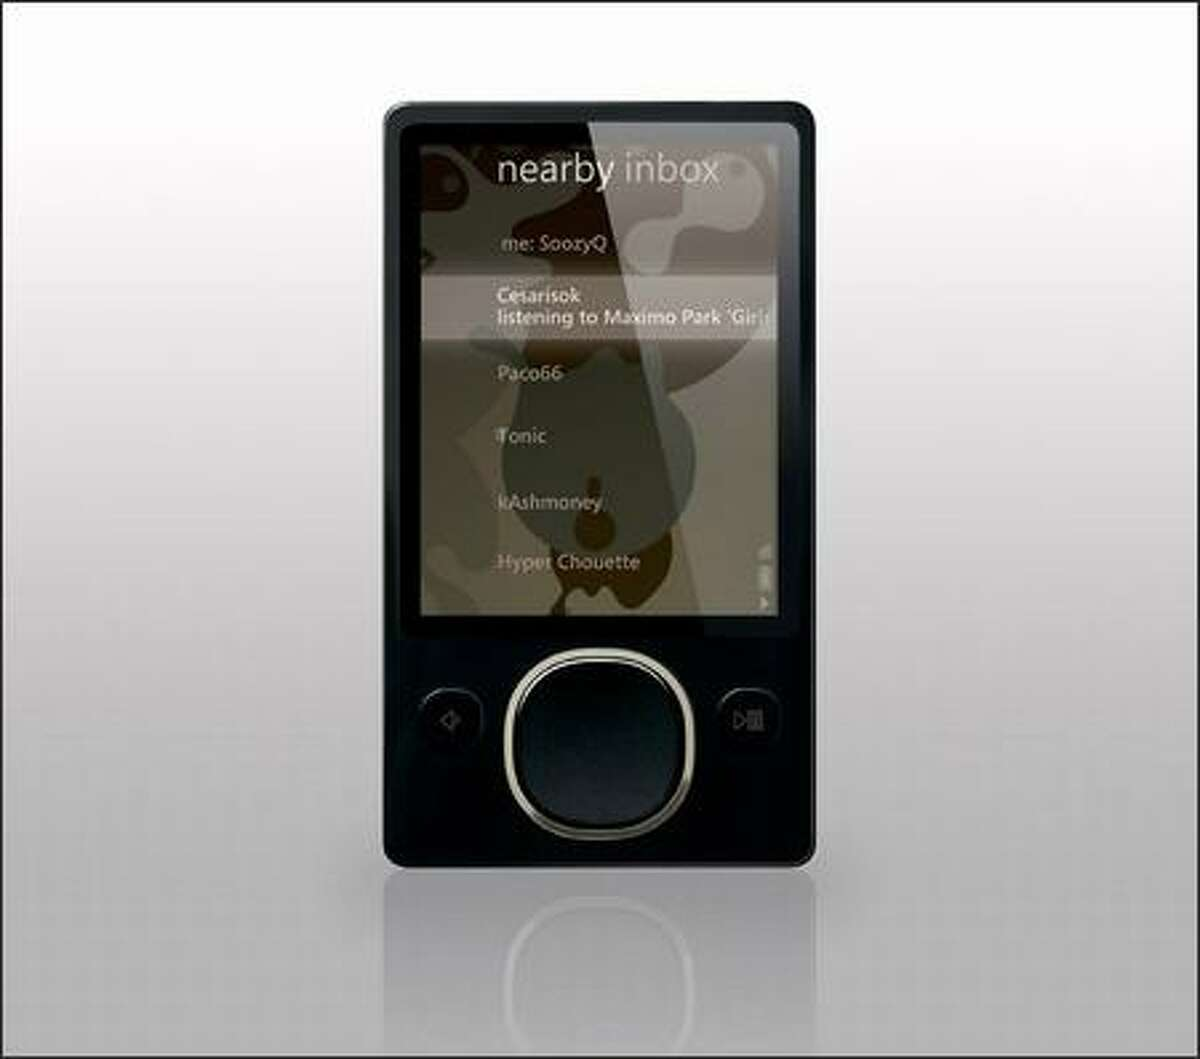 The new 80GB Zune media player sports a revamped user interface.